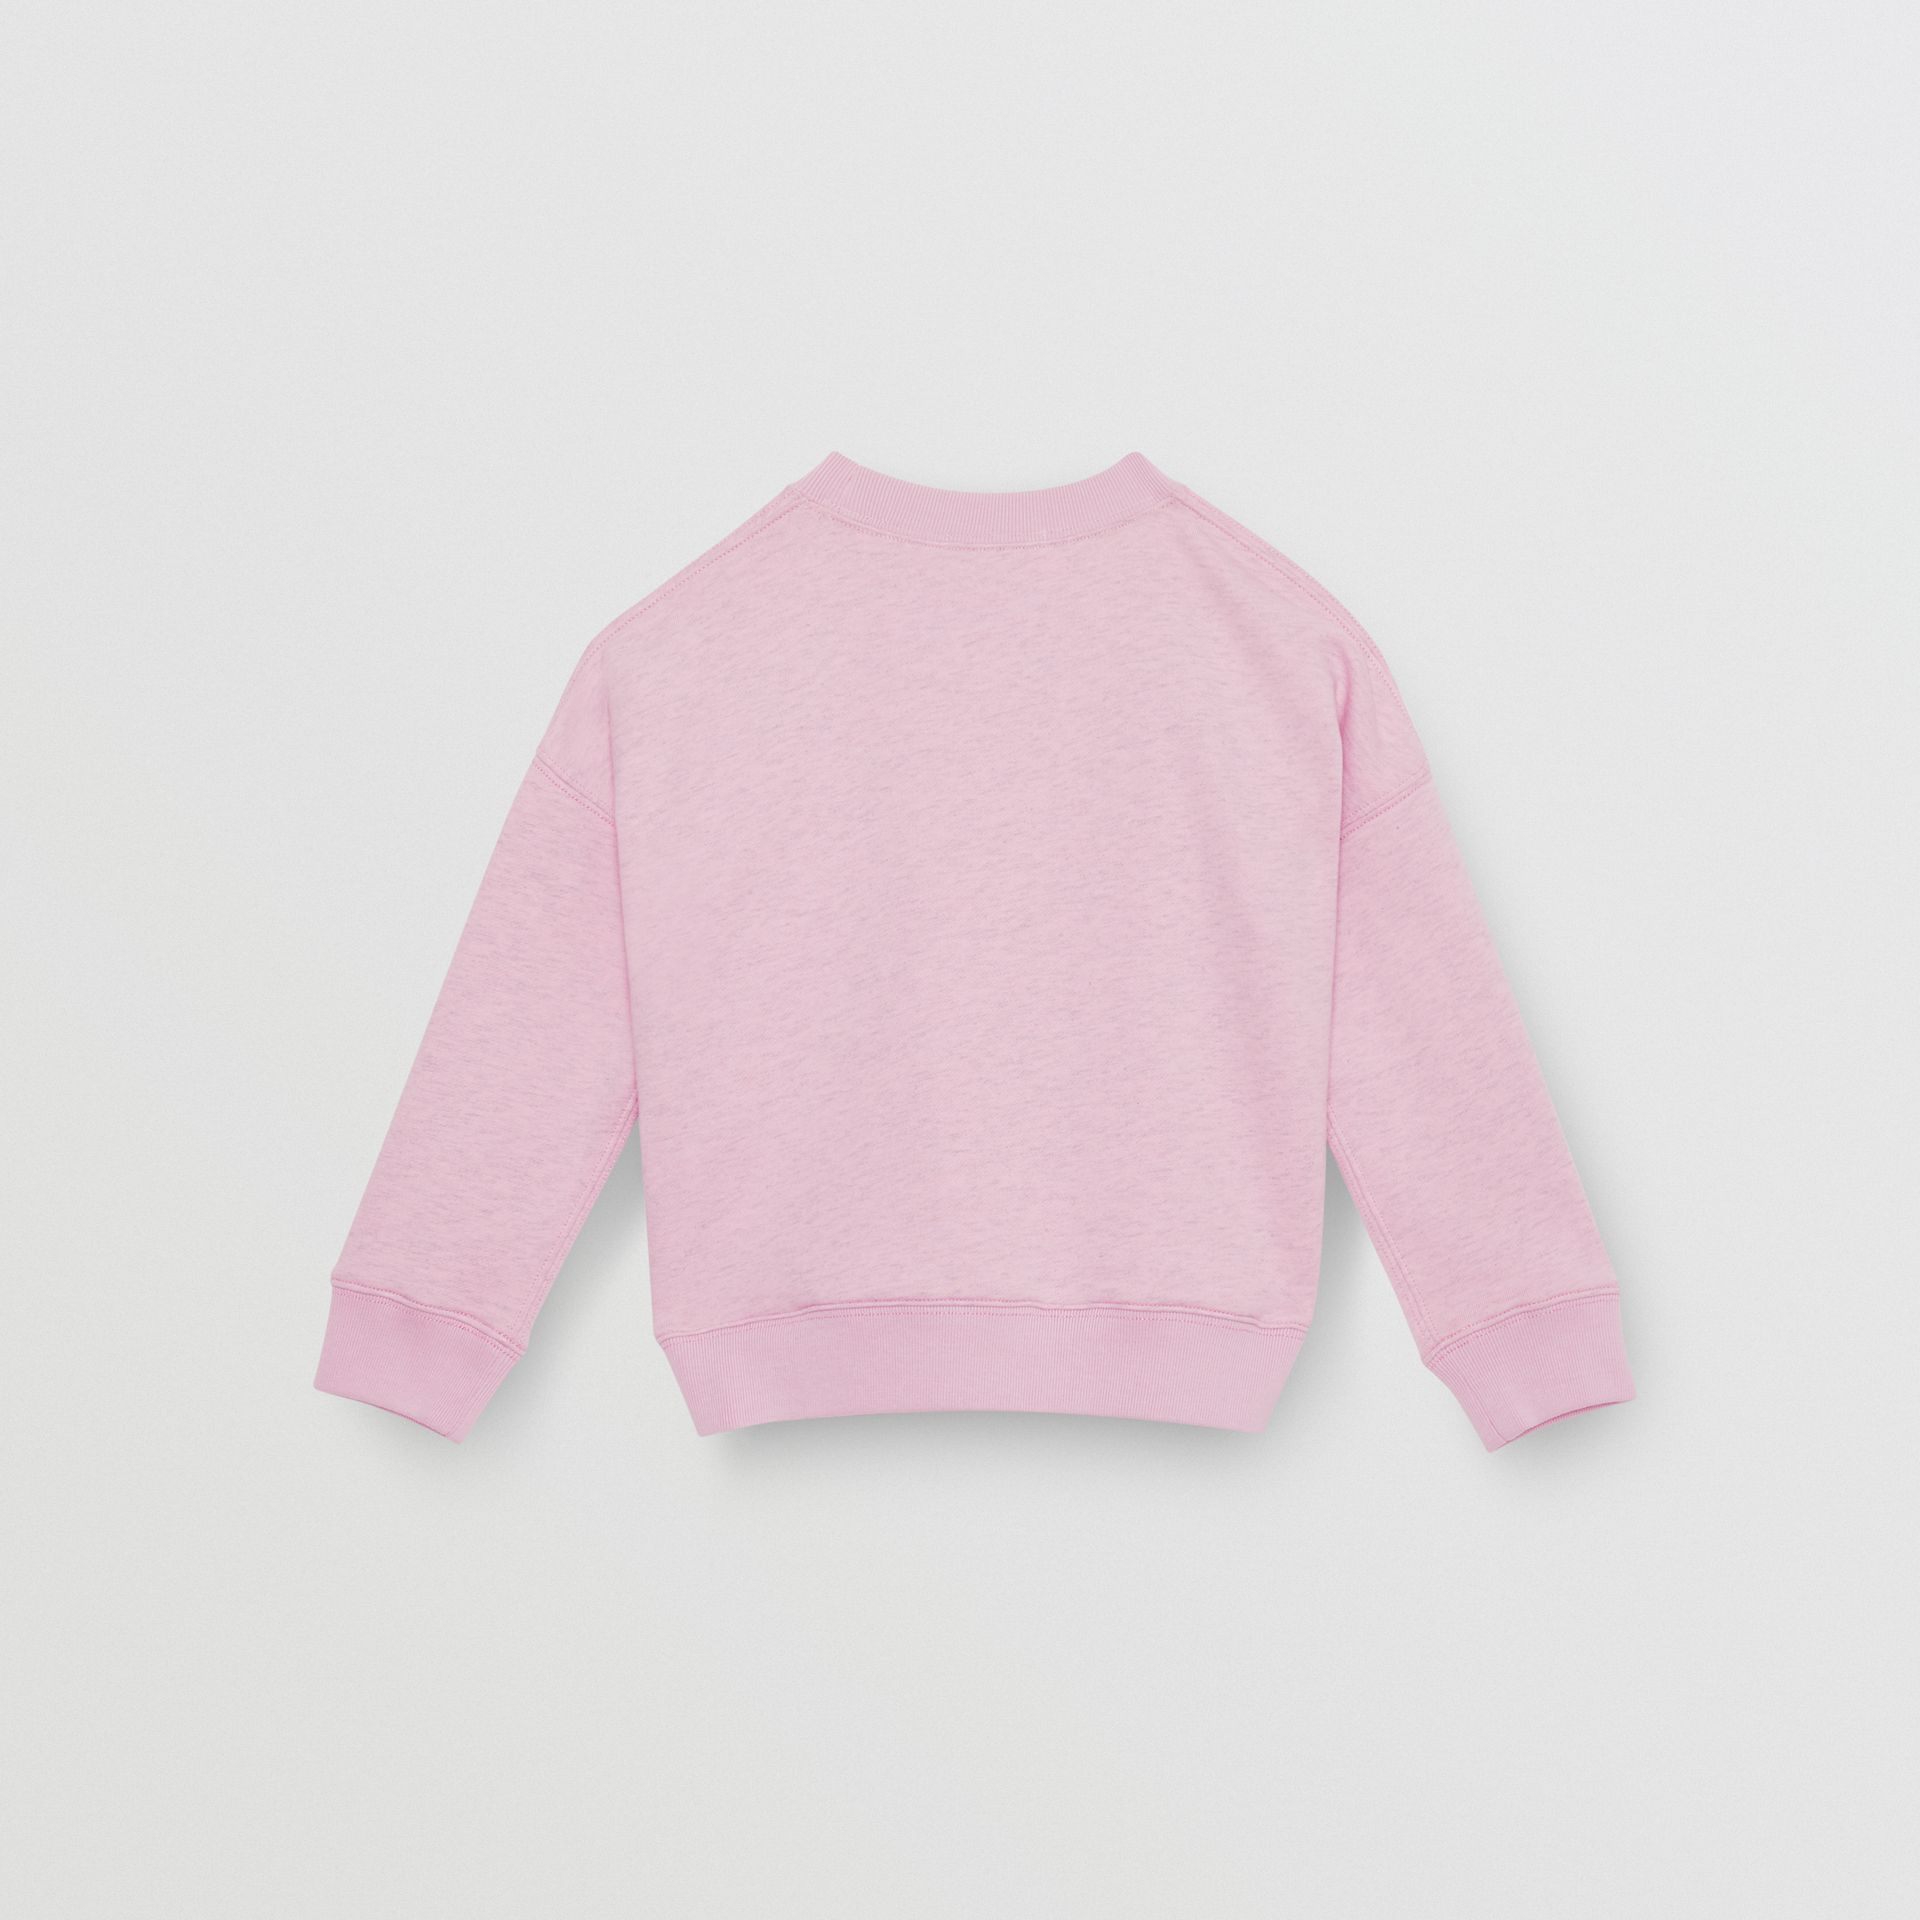 Logo Detail Cotton Sweatshirt in Pale Neon Pink - Children | Burberry United Kingdom - gallery image 3